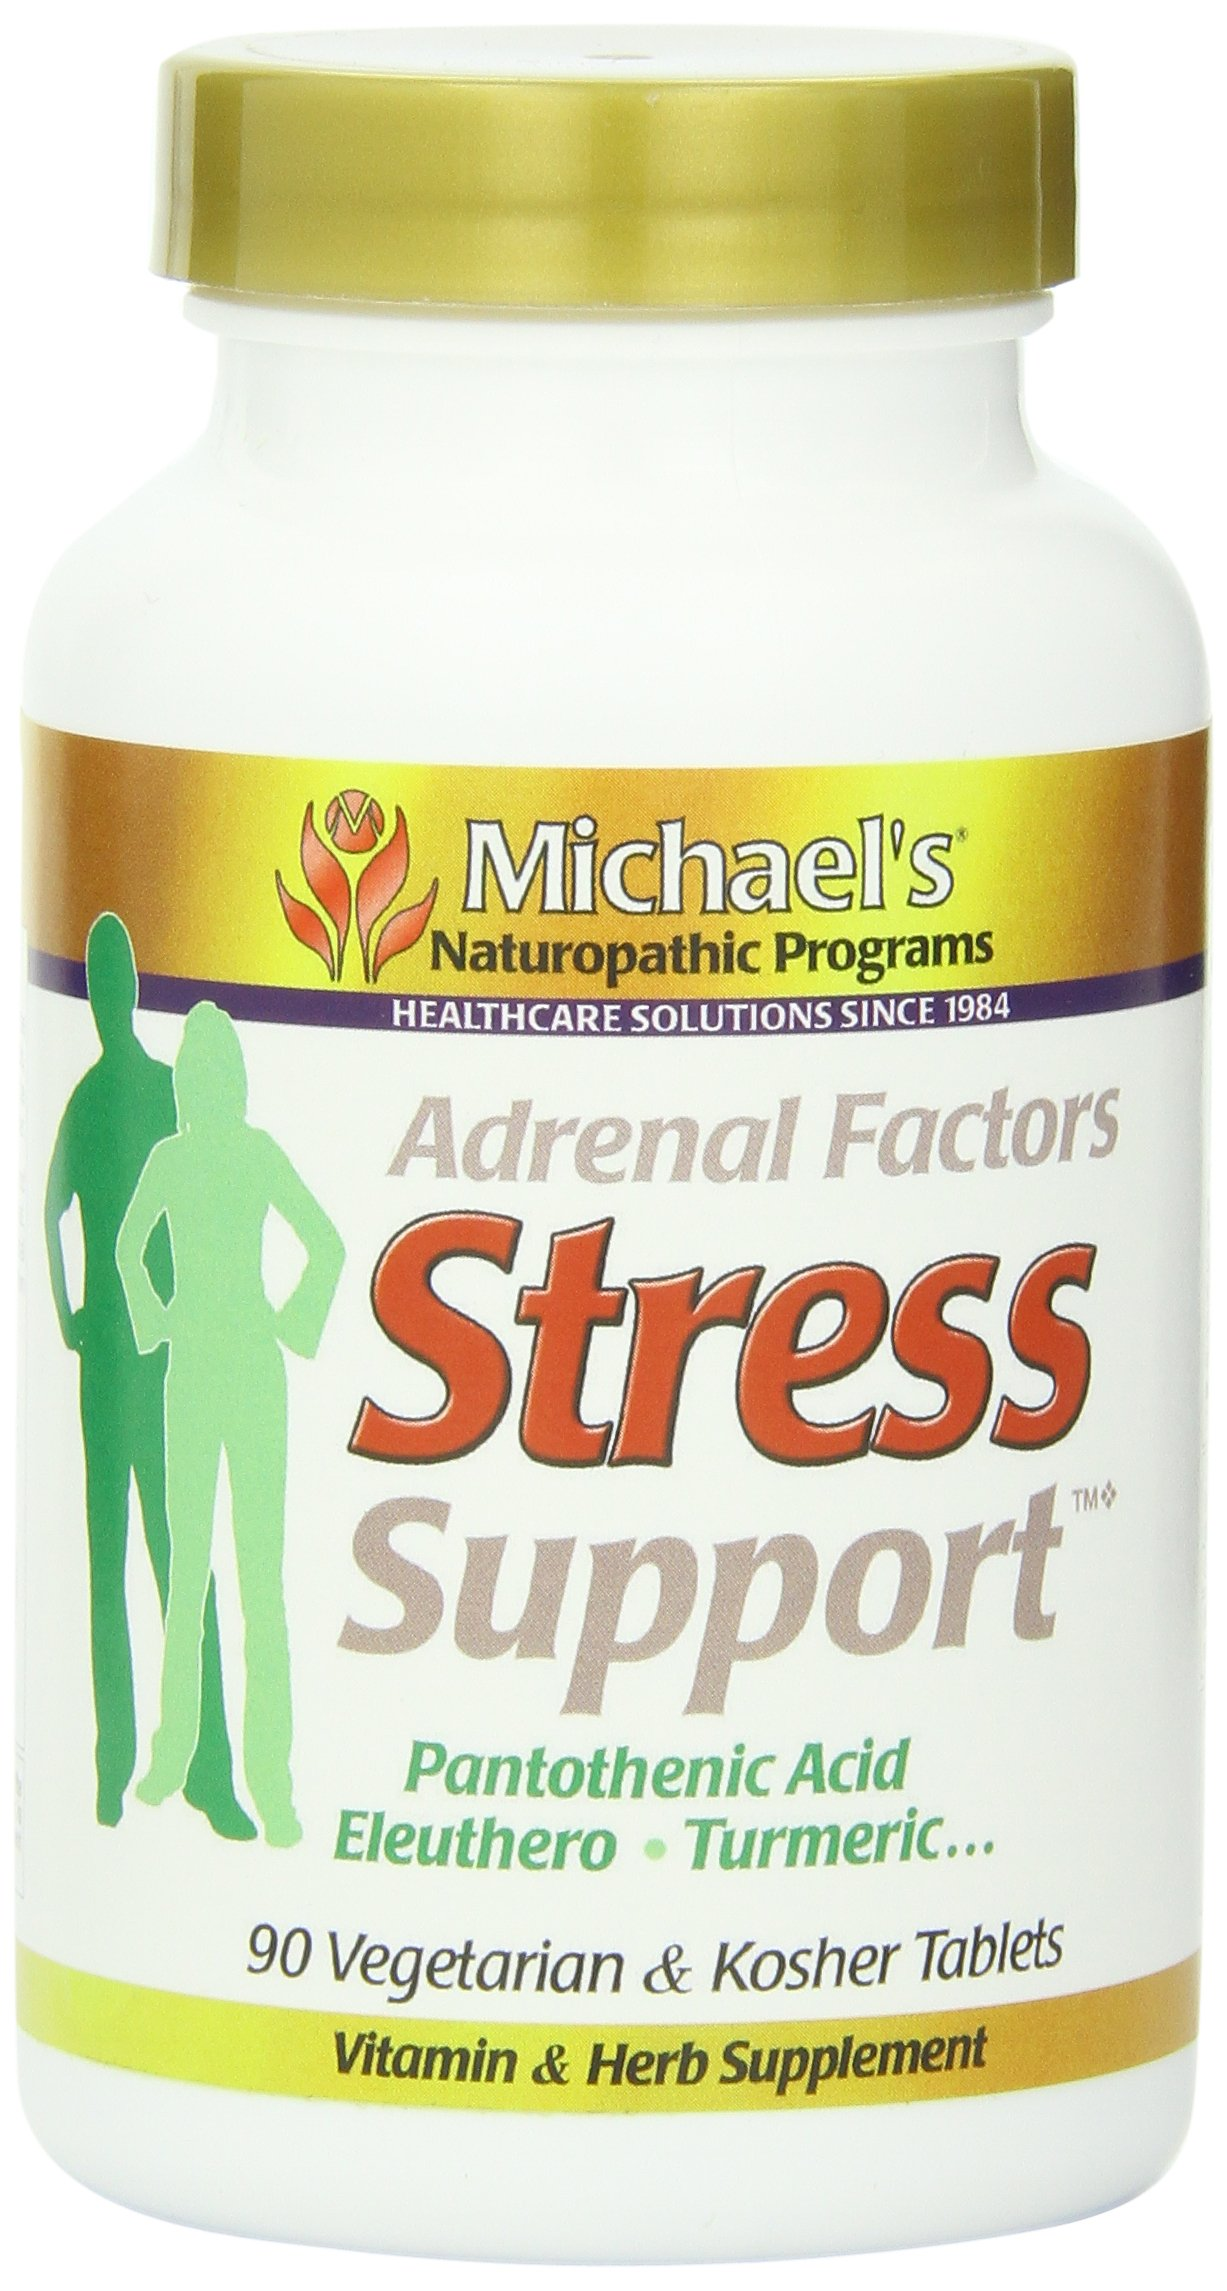 Michael's Naturopathic Progams Adrenal Factors Stress Support Supplements, 90 Count